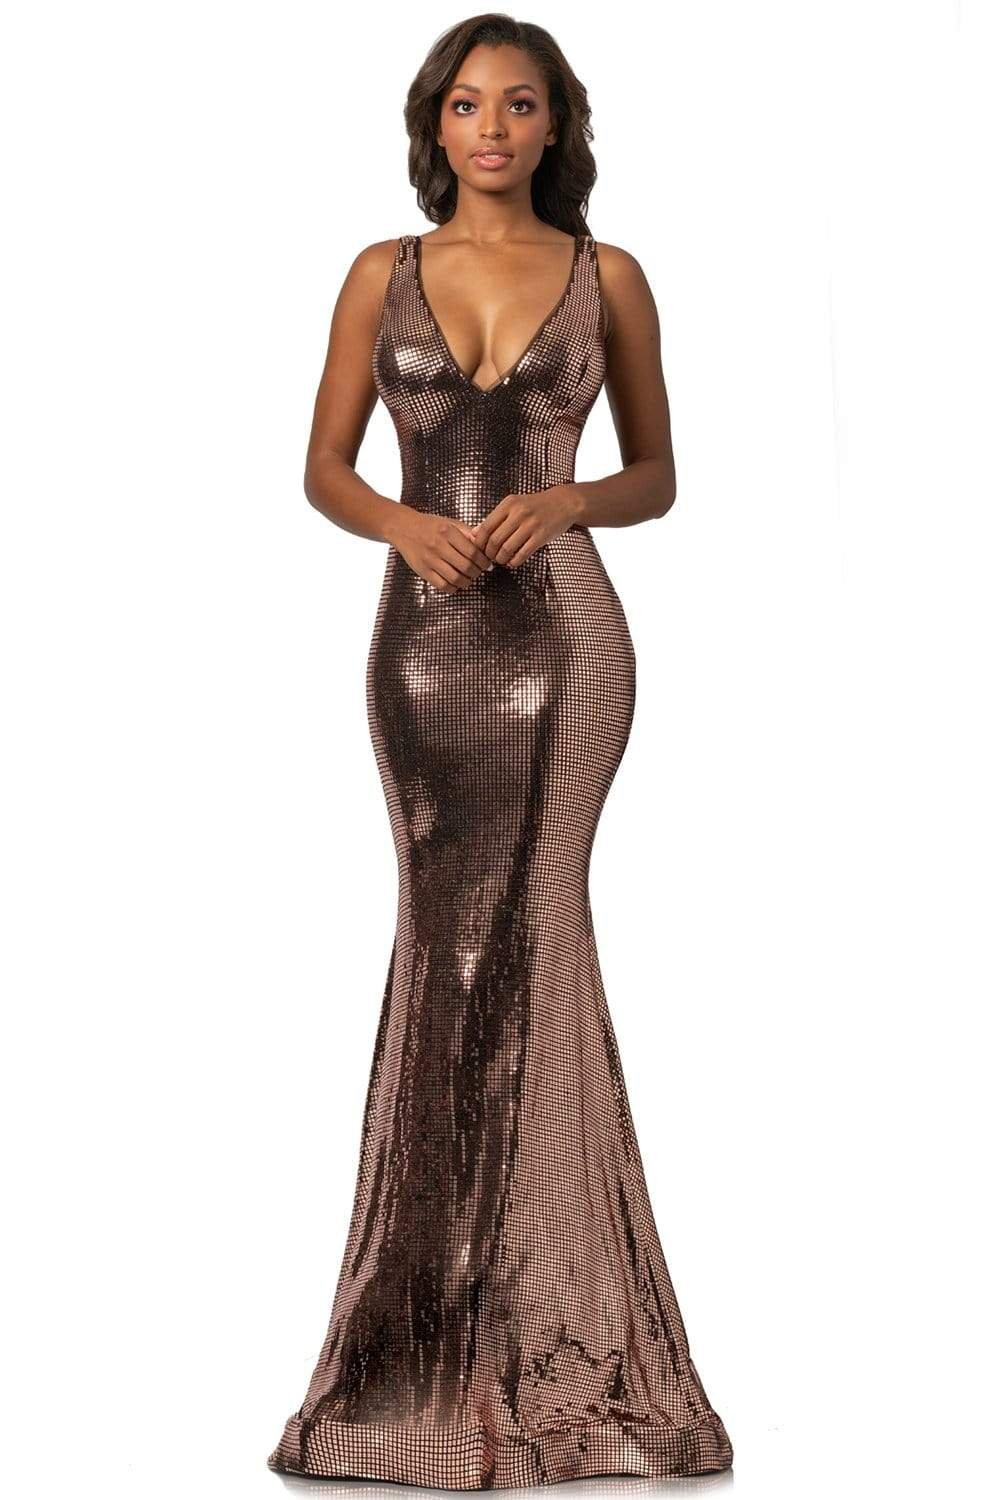 Johnathan Kayne - 2044 Sequin-Ornate Plunging Bodice Mermaid Gown from Johnathan Kayne